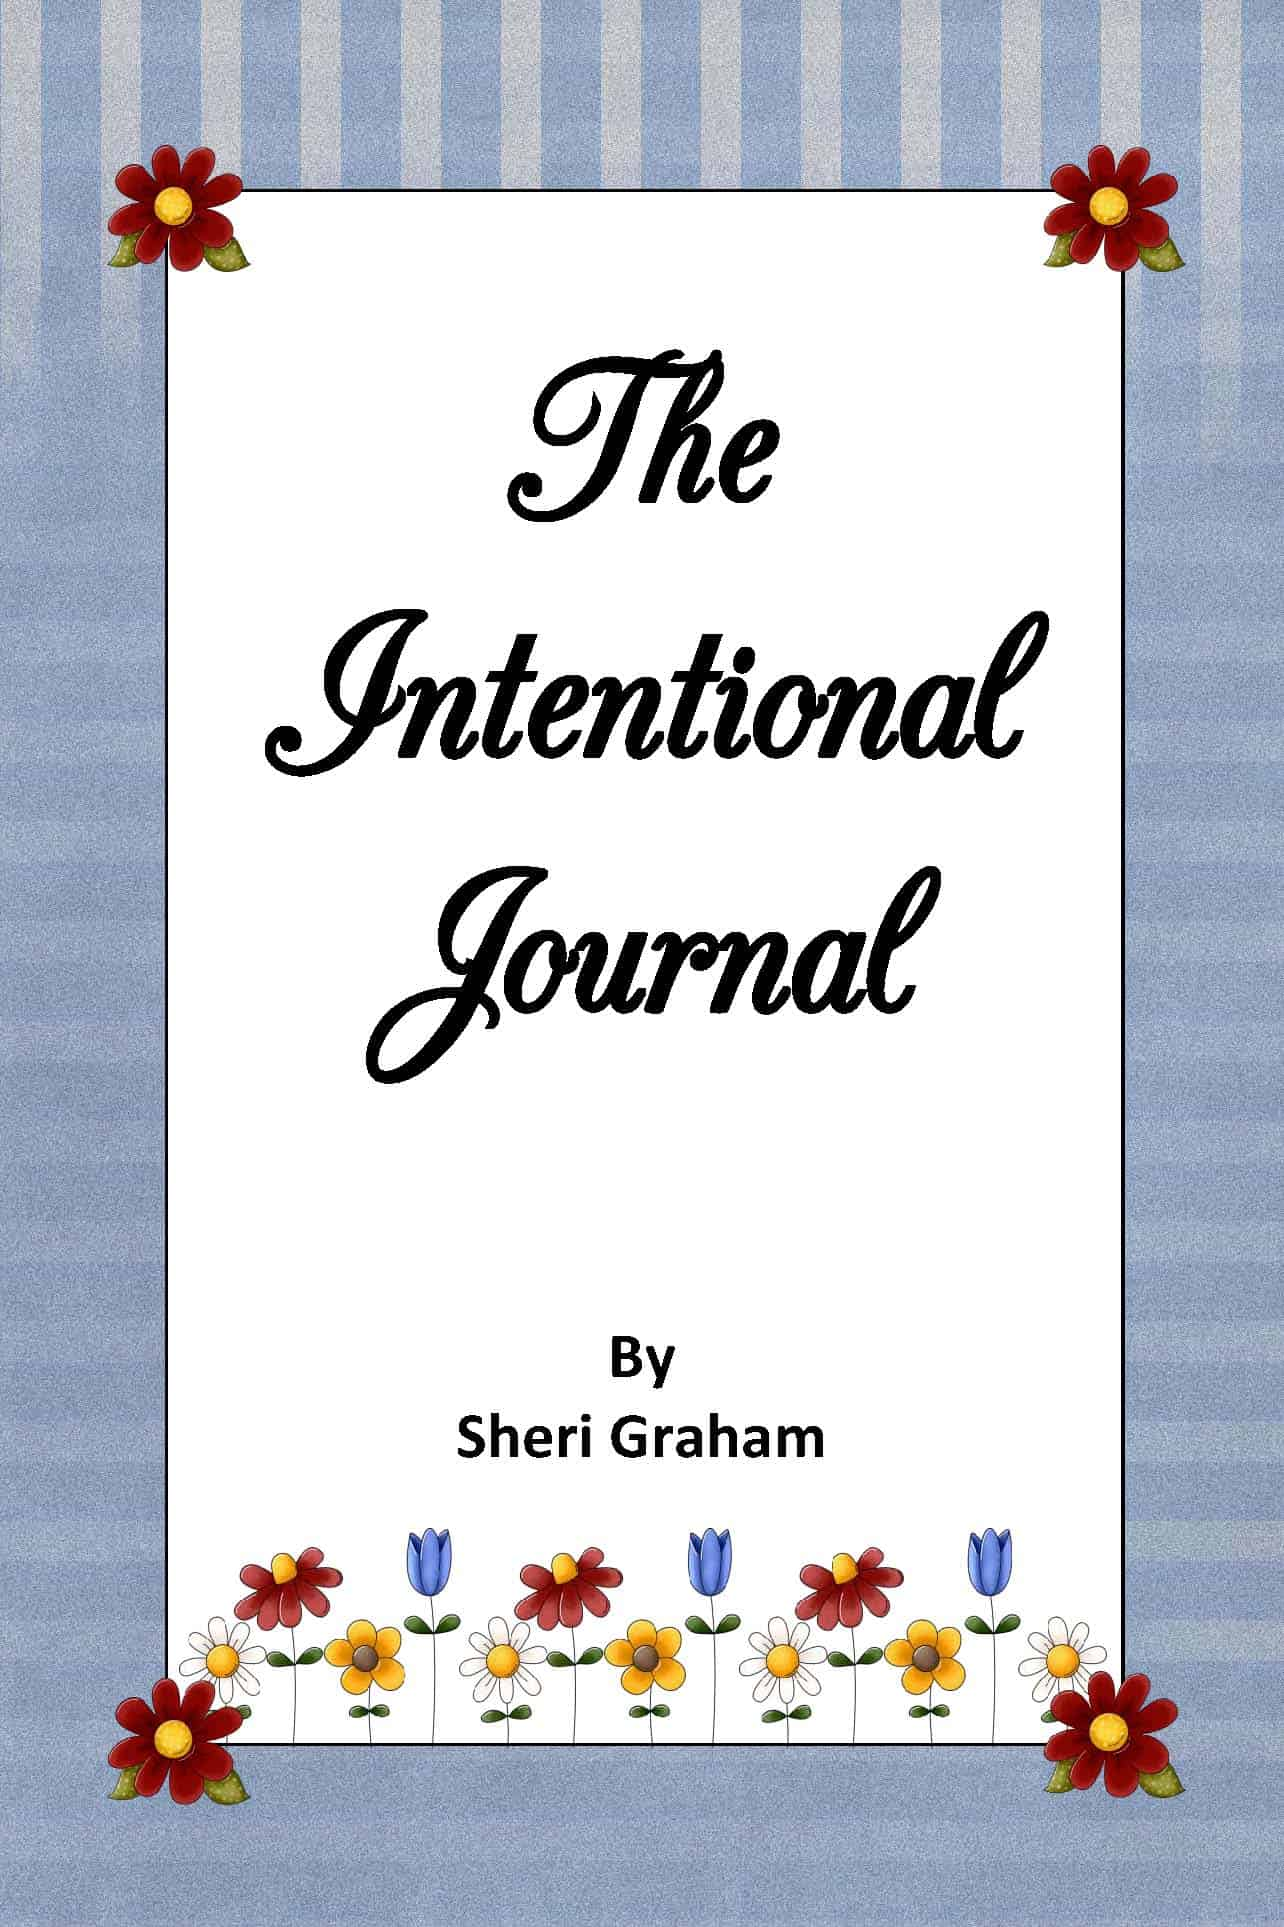 My plans for using The Intentional Journal in 2015